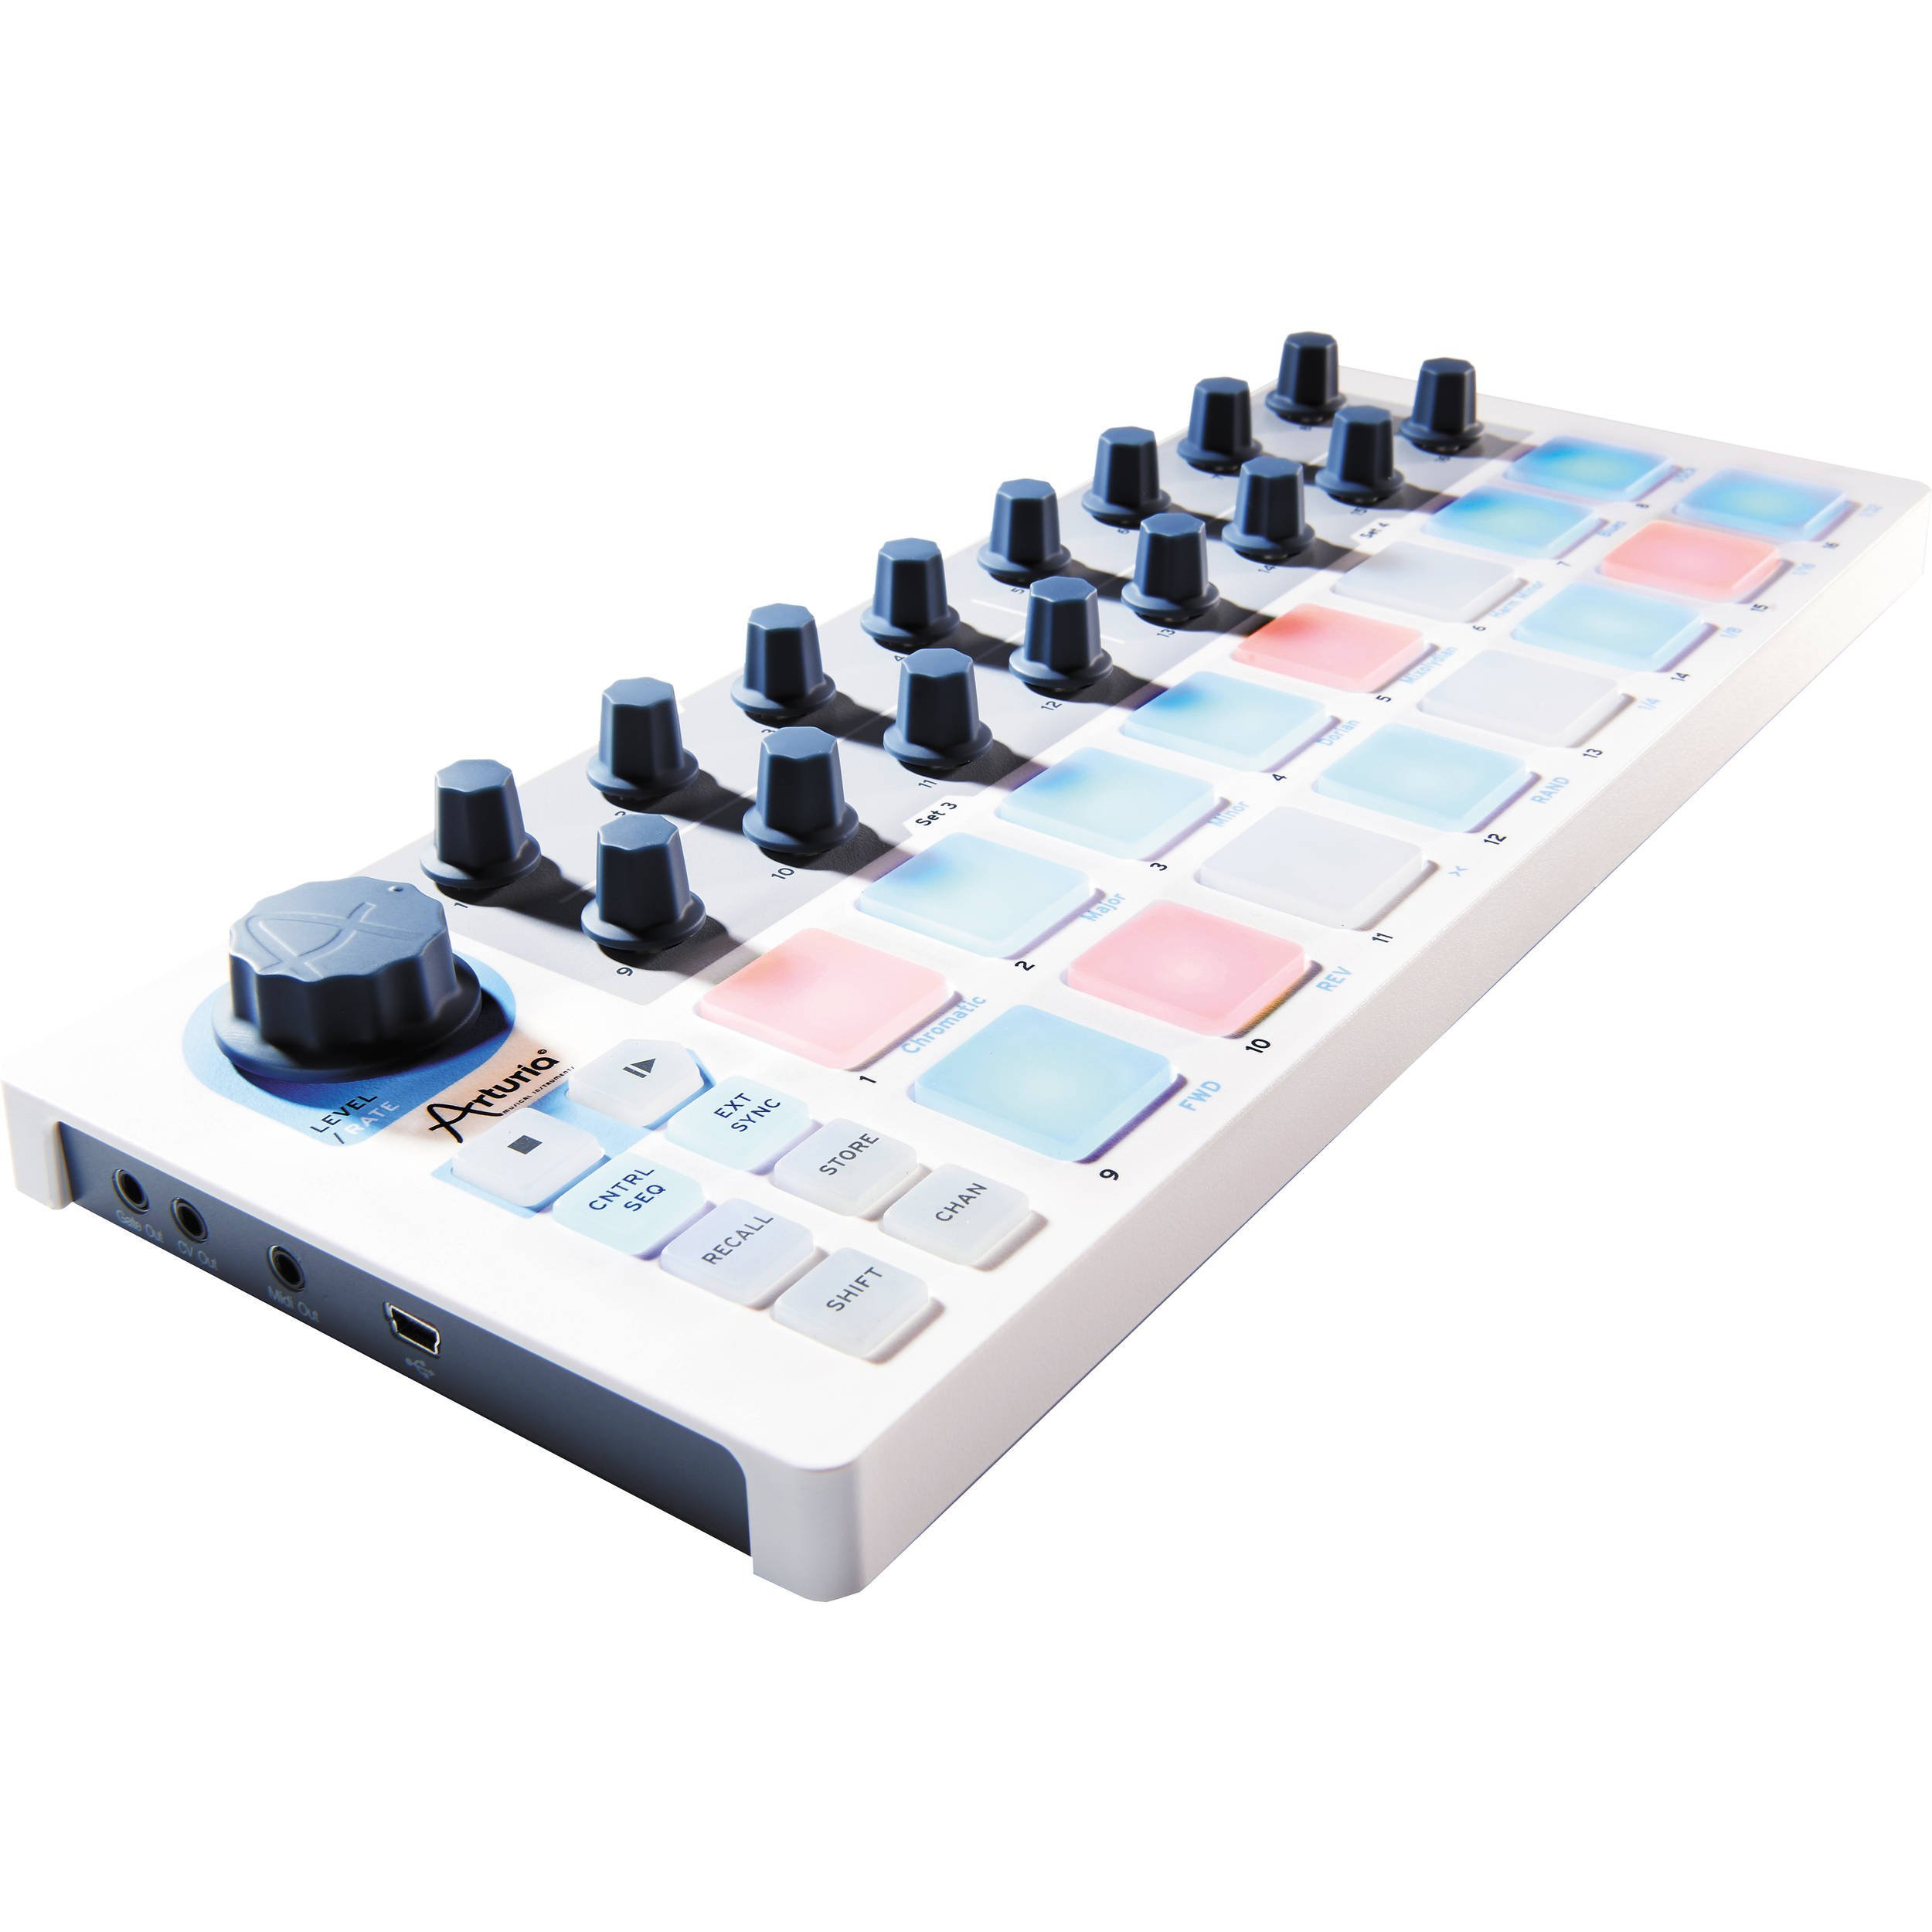 Arturia BeatStep USB/MIDI/CV Controller and Sequencer by Arturia